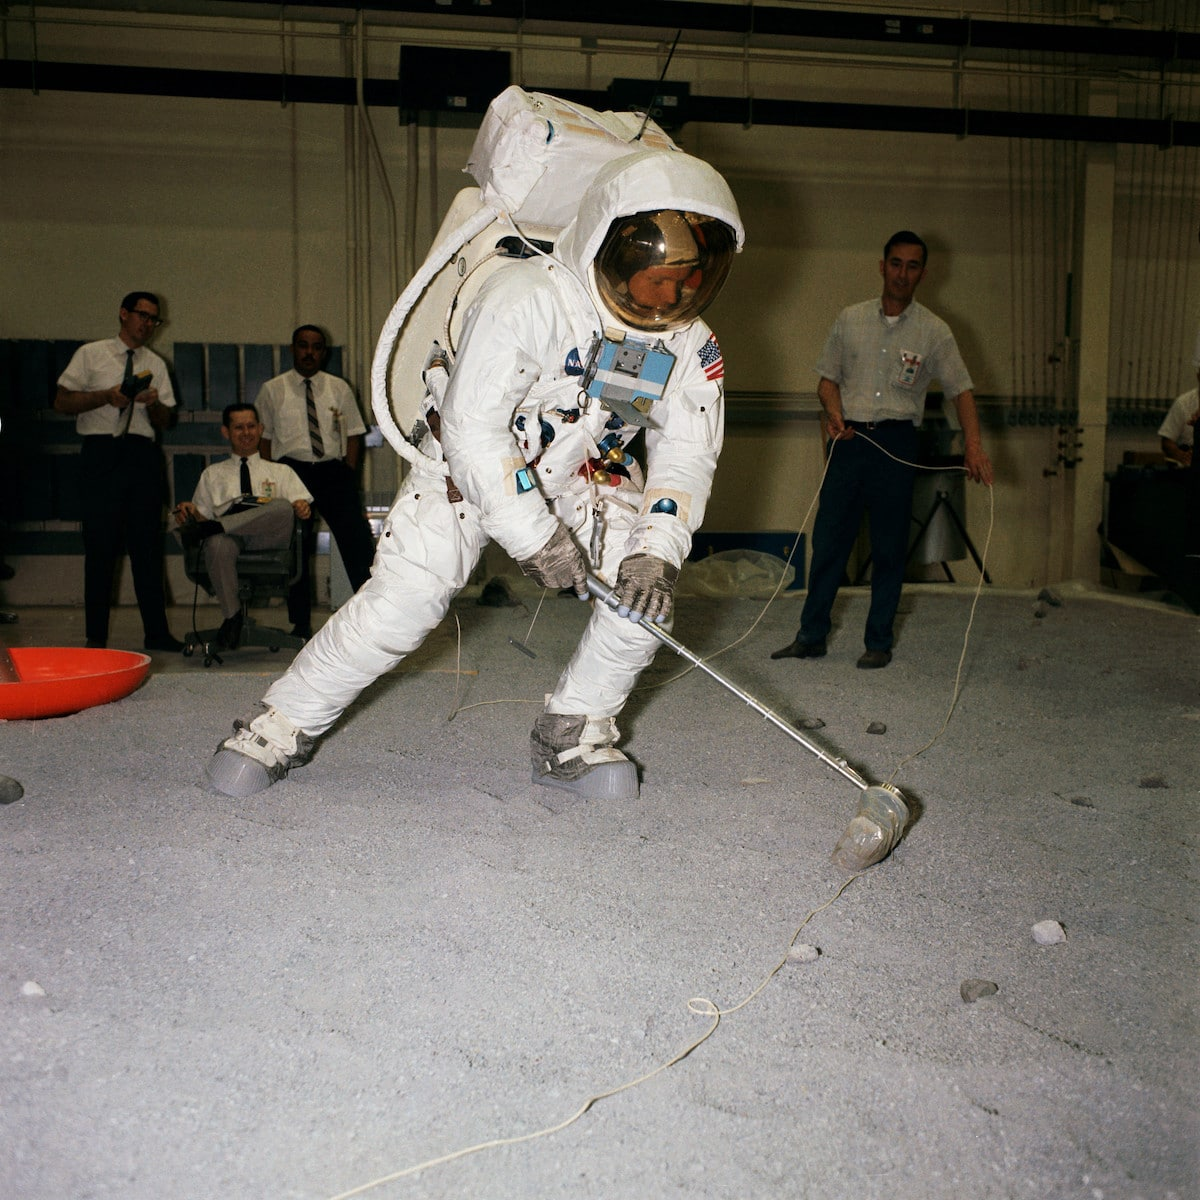 Apollo 11 Astronauts in Training